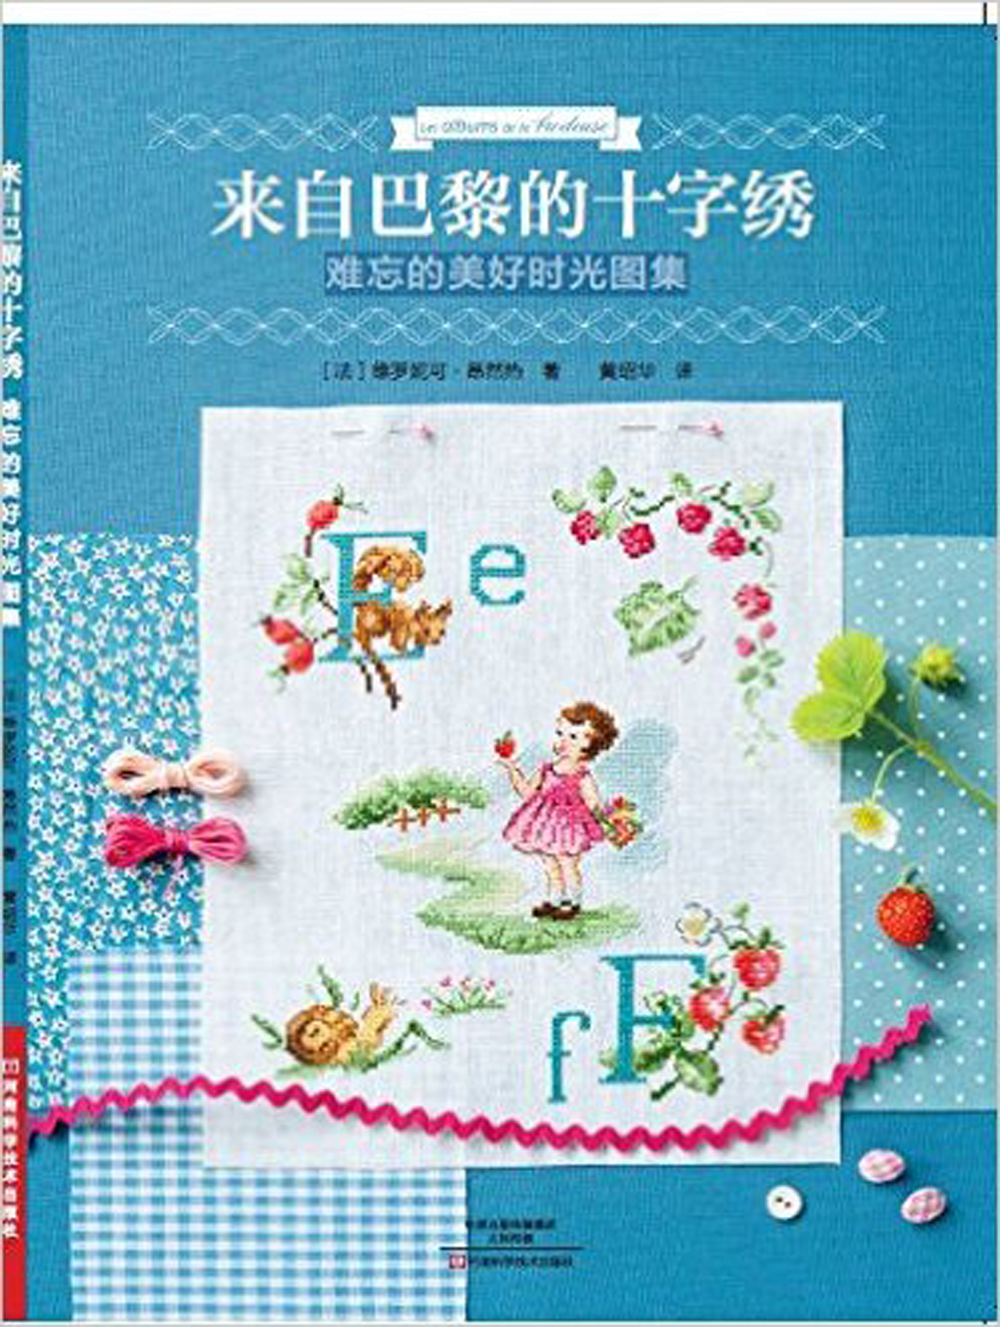 From Paris Embroidery Stitch Books A Memorable Collection Of Good Times / Chinese Handmade Book